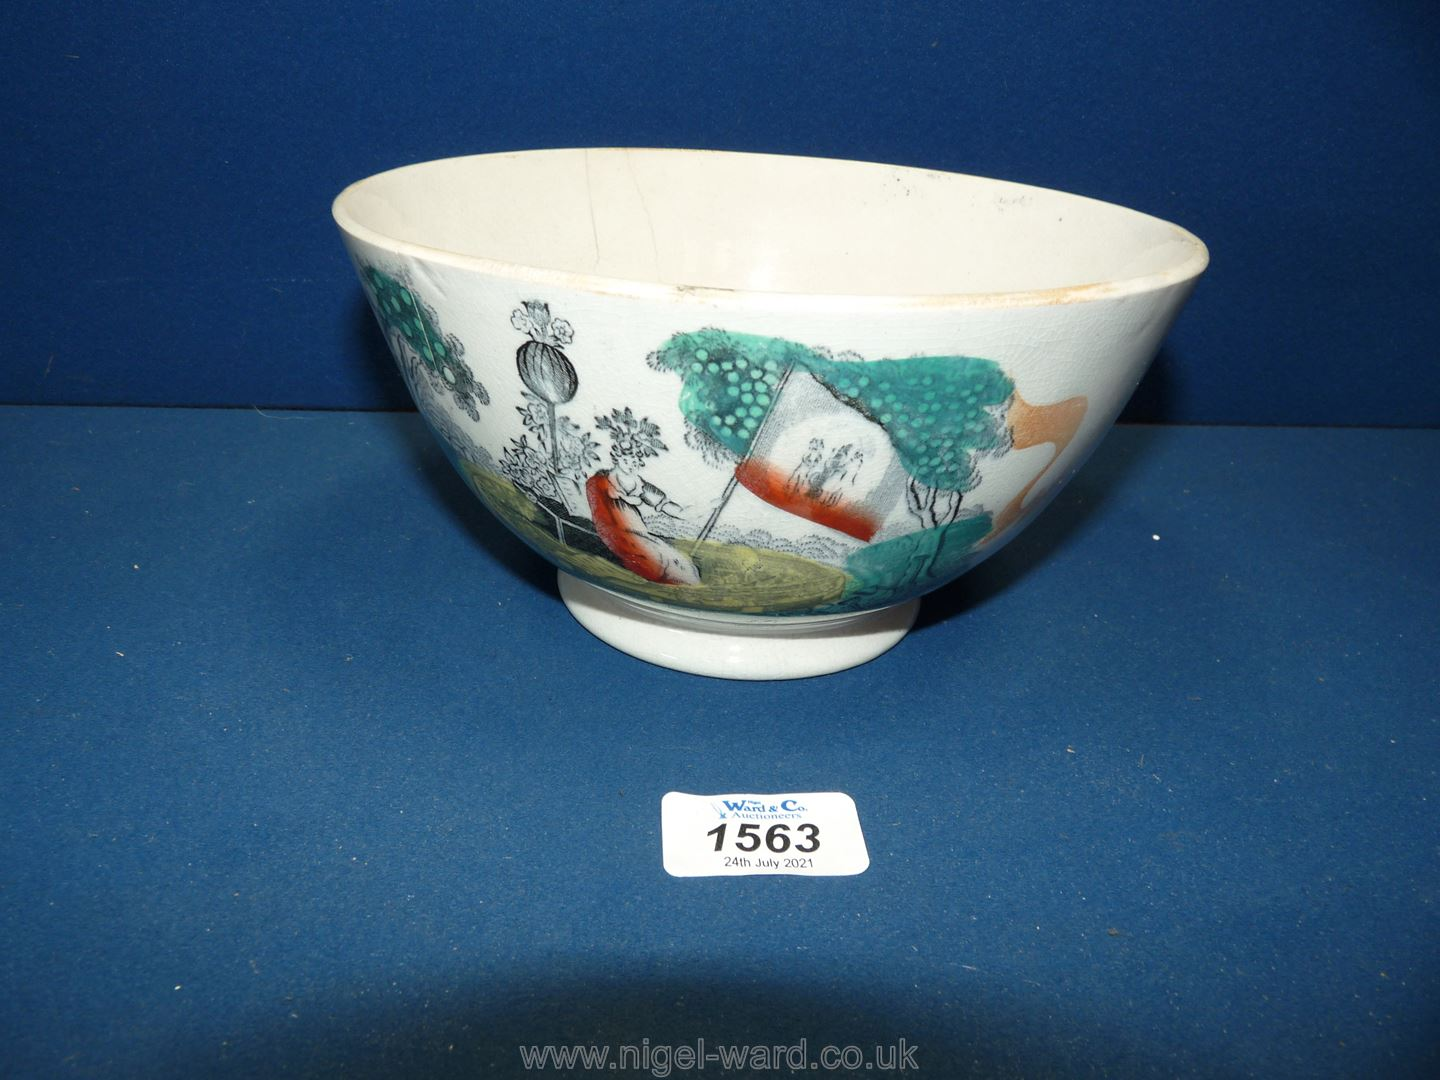 An attractive Sunderland lustre bowl with a transfer of the Gardeners Arms and motto, circa 1870.